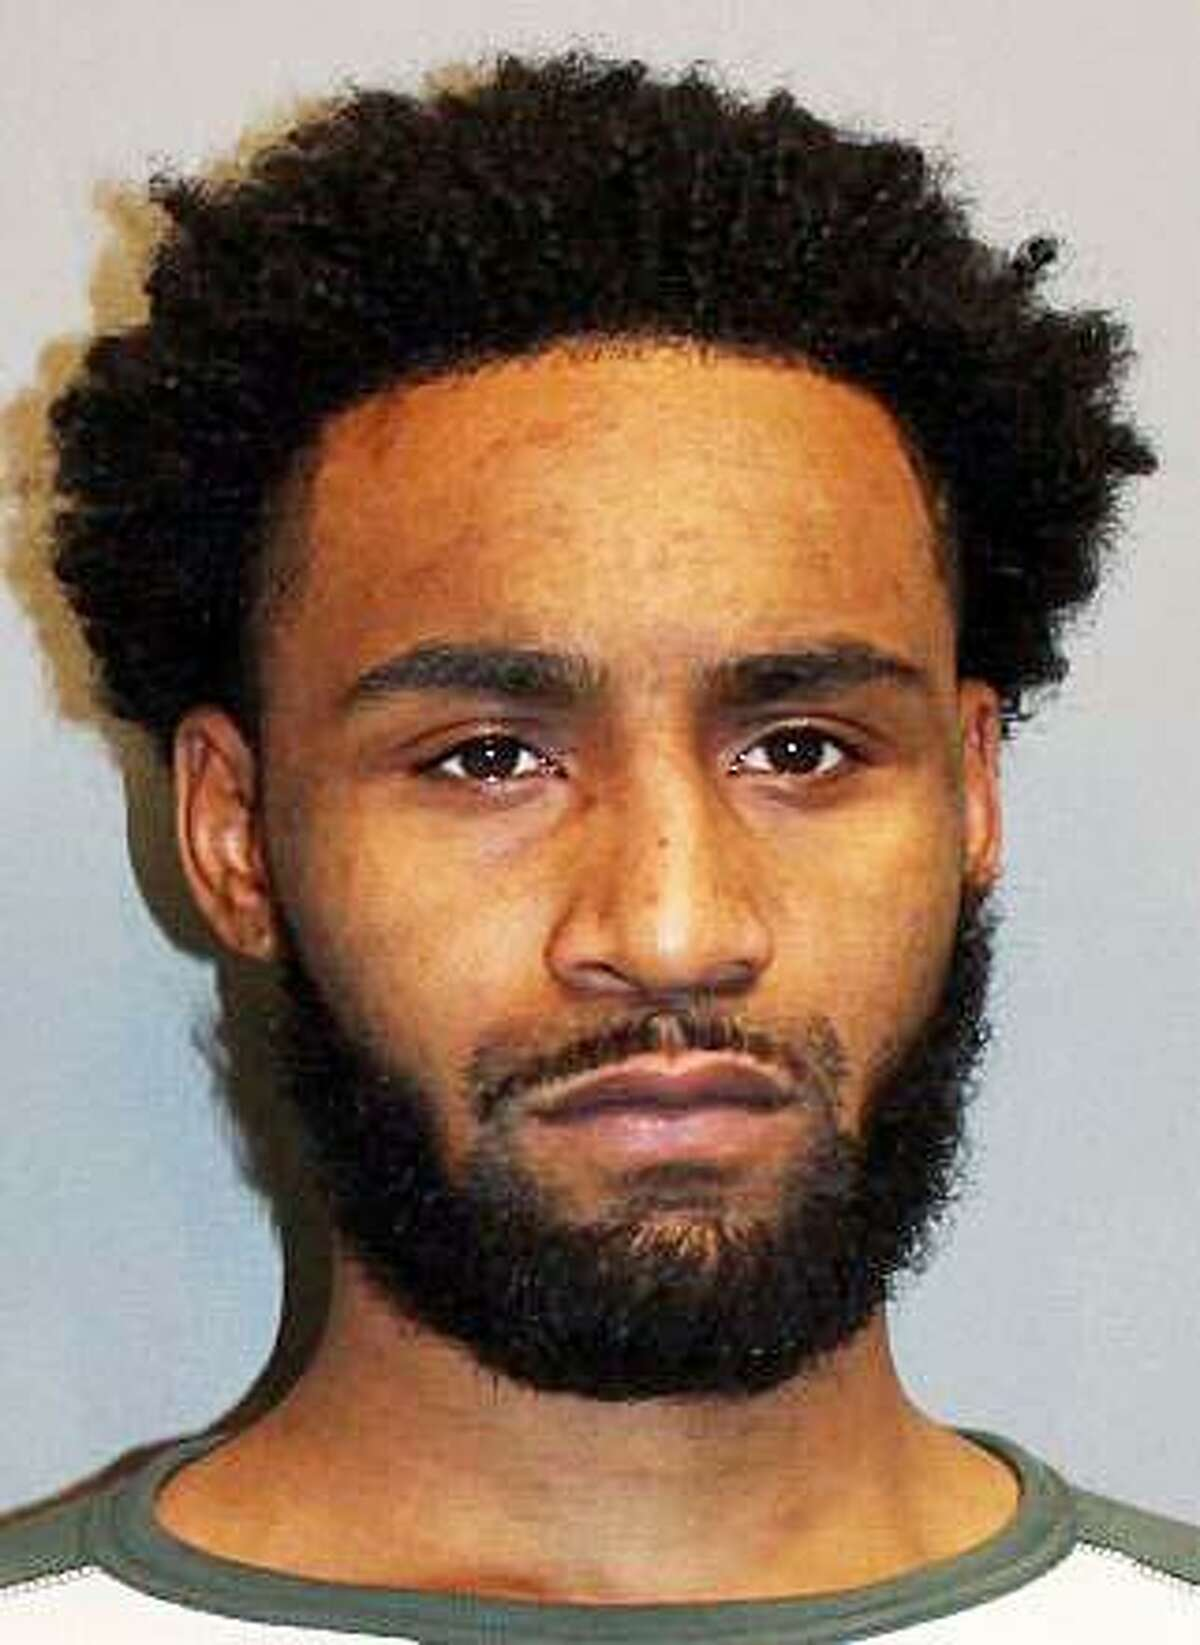 Jean Benoit, 22 of Robbins Square in Norwalk, was charged with possession of a controlled substance with intent to sell within 1,500 feet of a daycare and possession of a controlled substance. He was held on $25,000 bond.